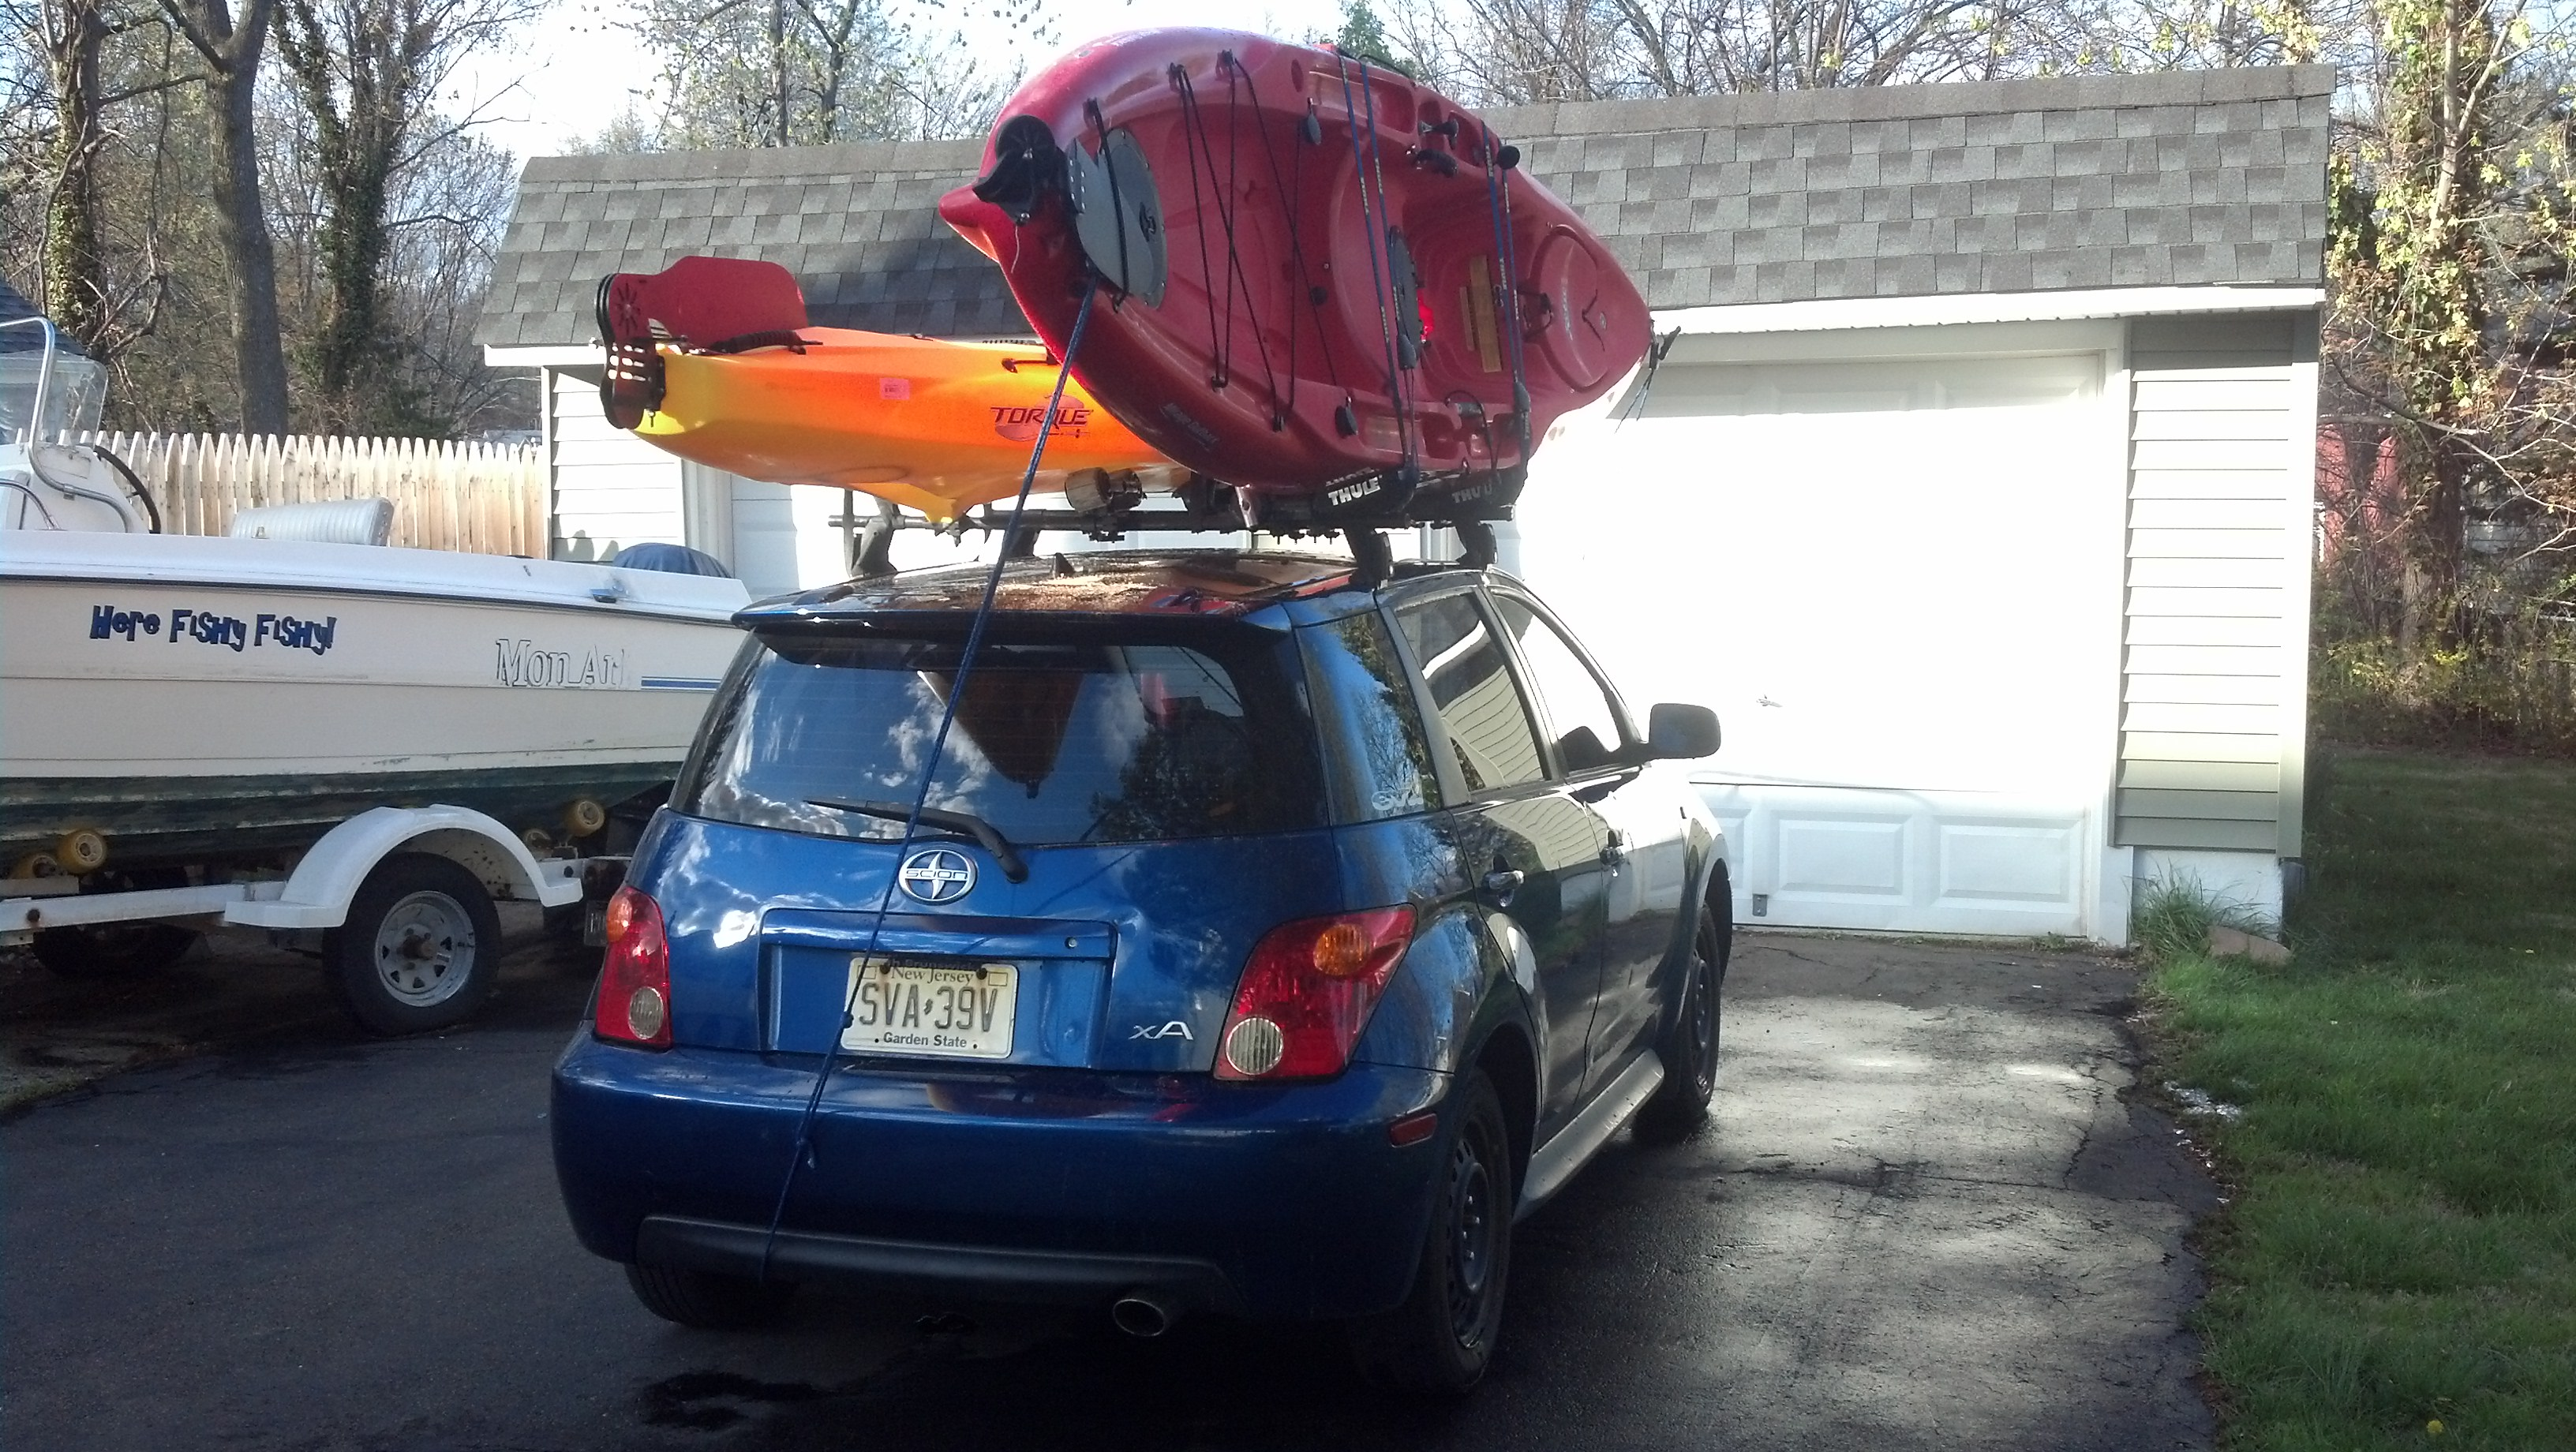 Almost 170 Combined Weight On Top Of A Scion Xa Yakima Bars. I Dont Think  The Weight Limit Matters.